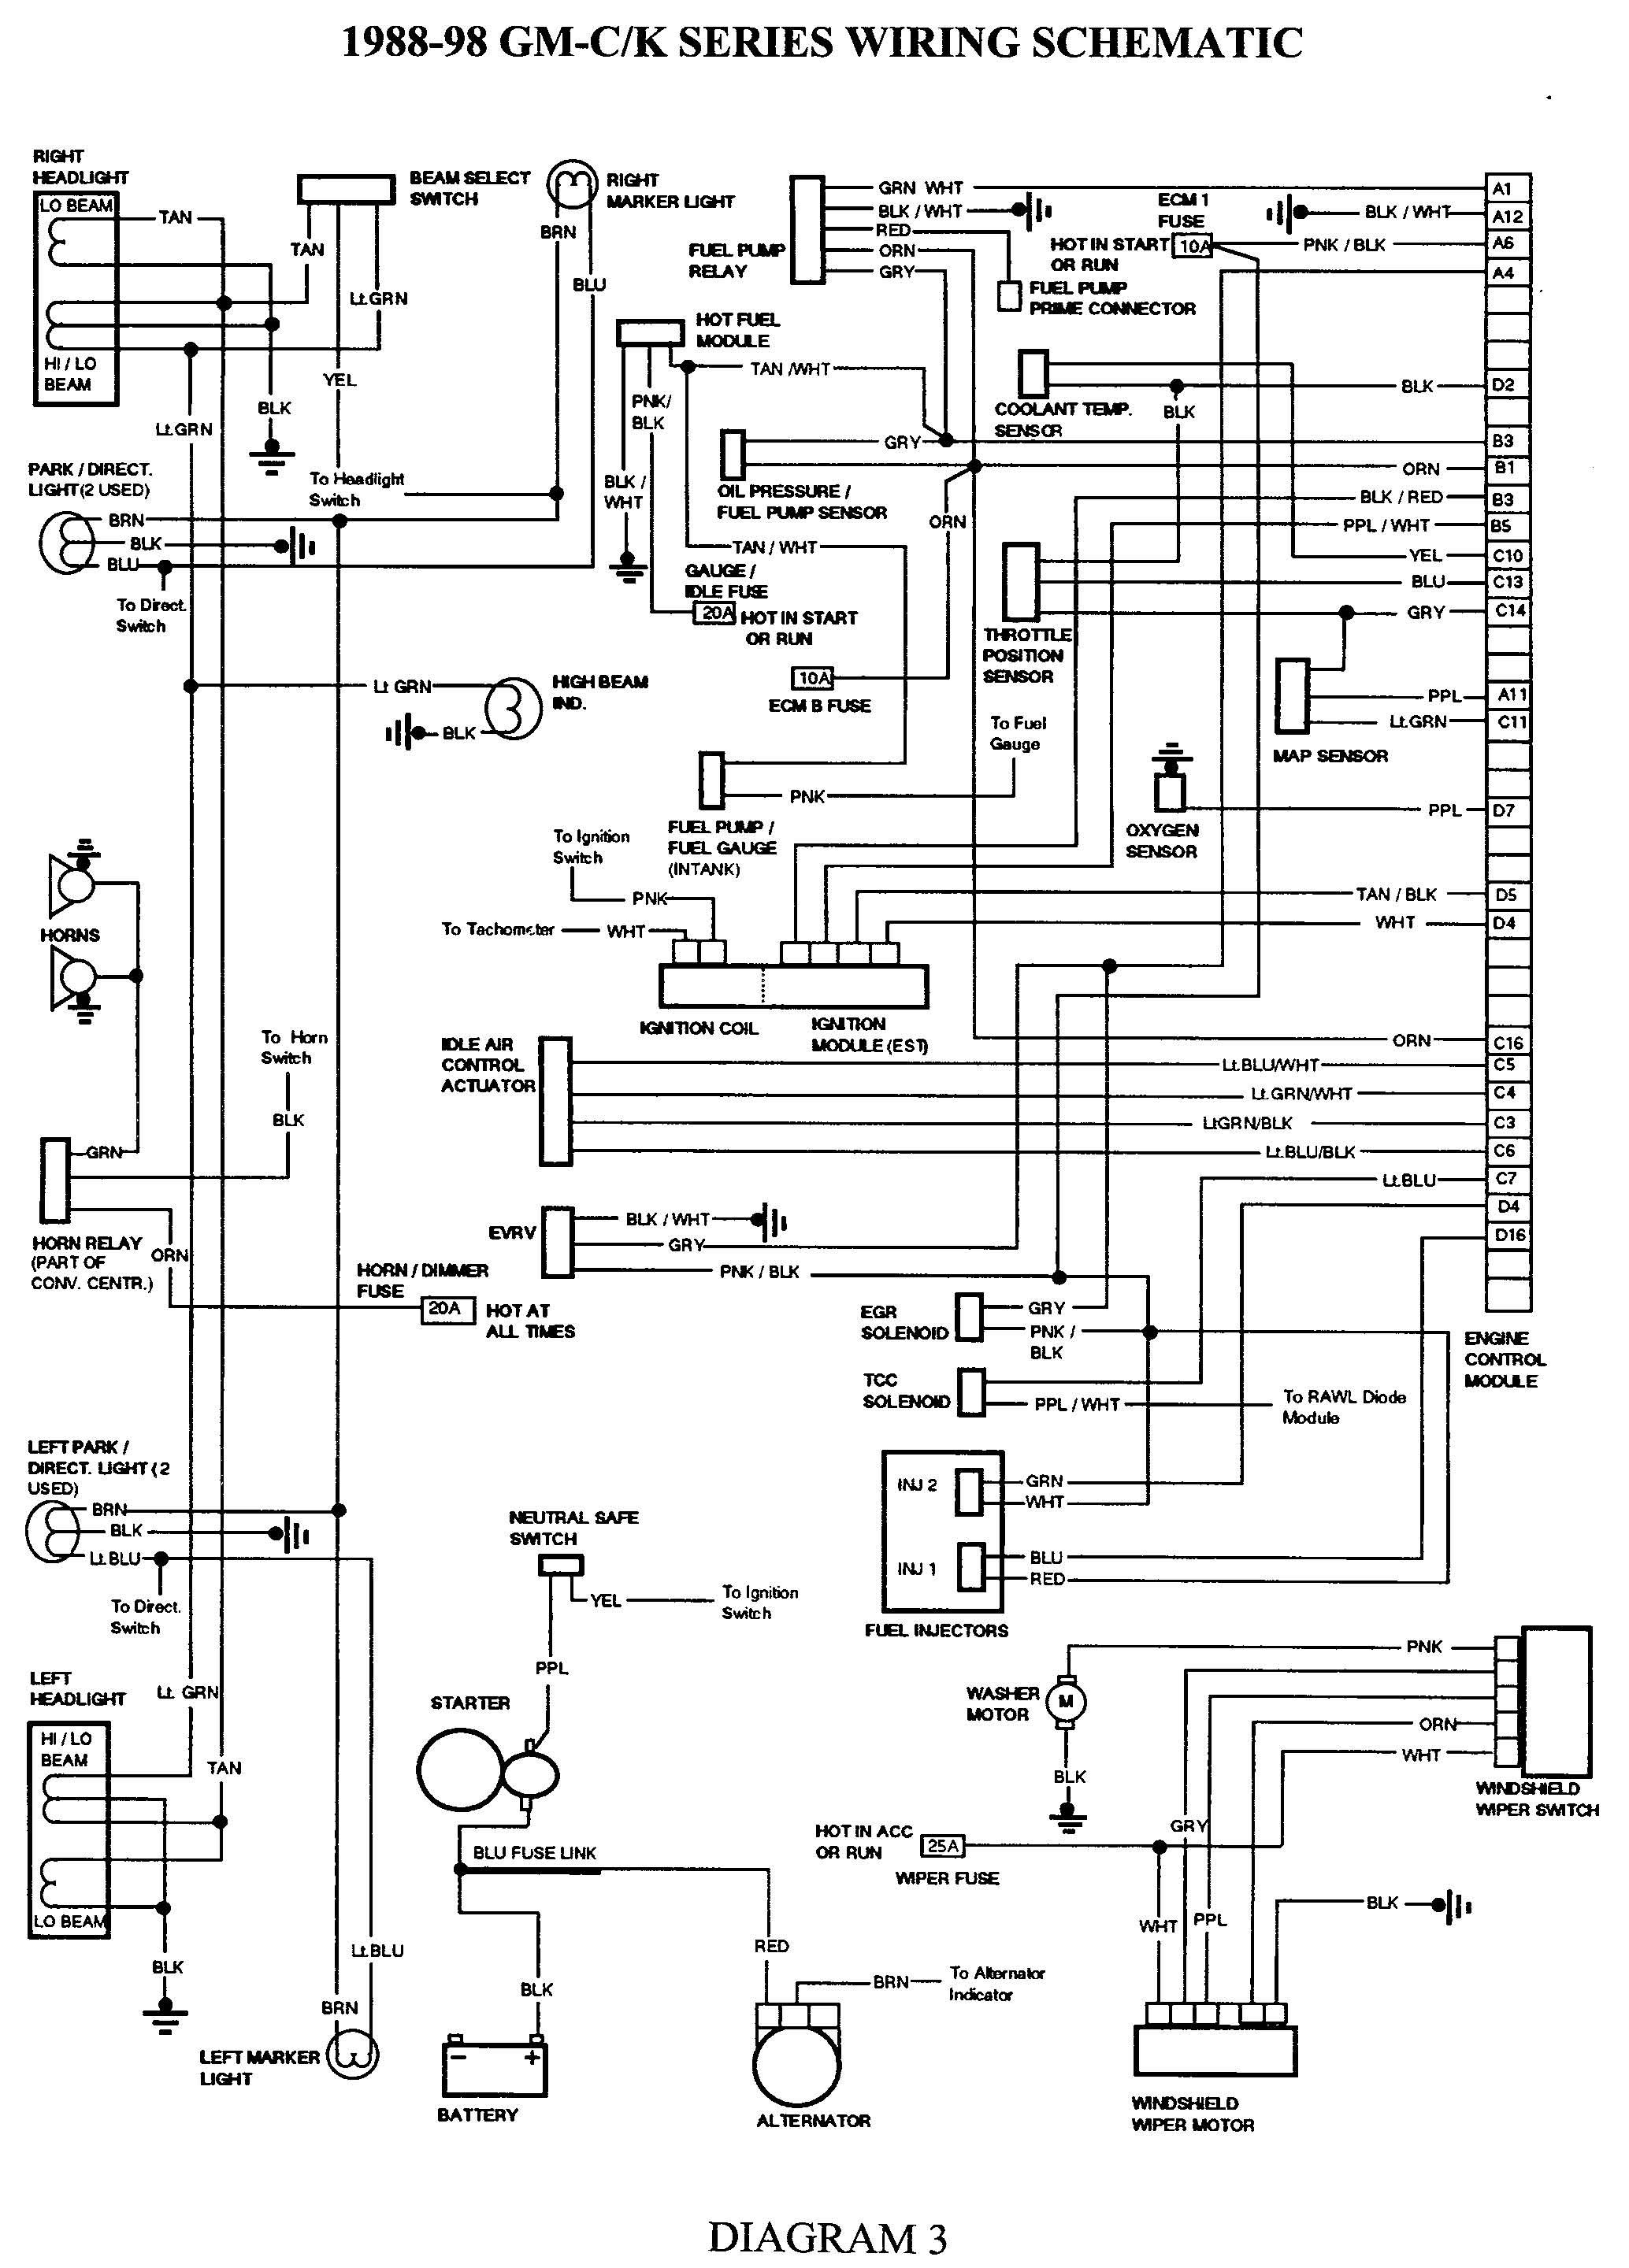 gmc truck wiring diagrams on gm wiring harness diagram 88 98 kc 1981 gmc truck wiring diagram gmc truck wiring diagrams on gm wiring harness diagram 88 98